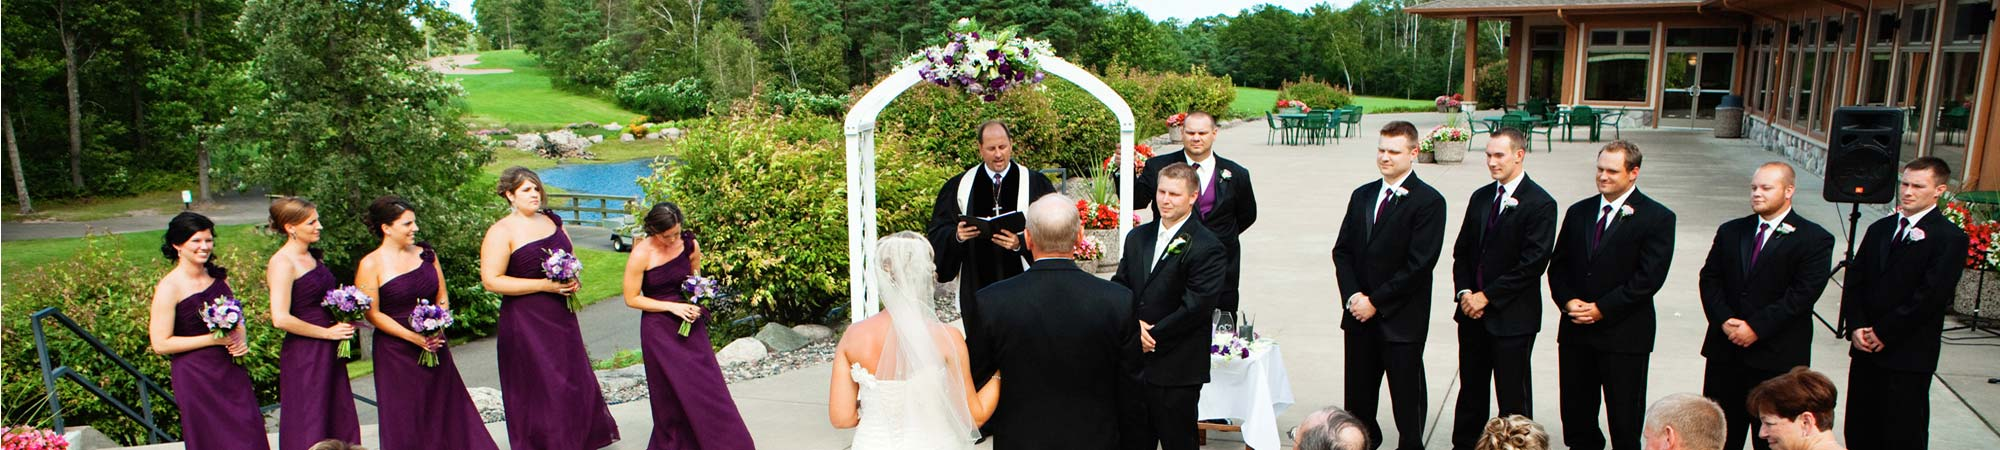 slide-wedding_Legacy_patio_2000x450